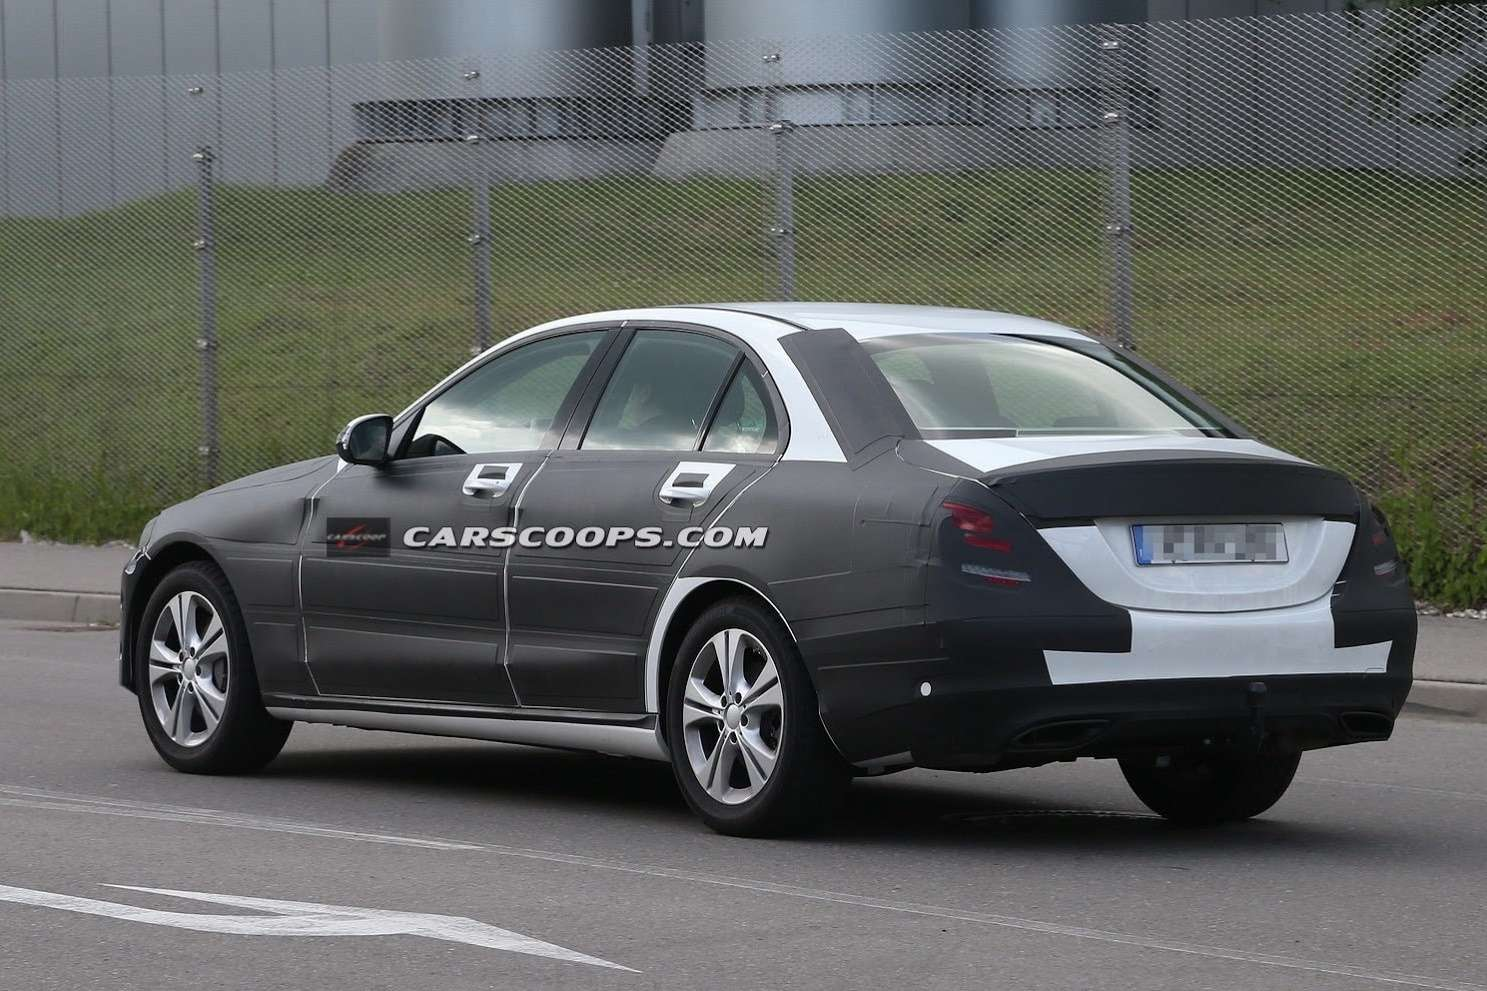 2015 Mercedes C Class Undisguised Carscoops8[3] no copyright